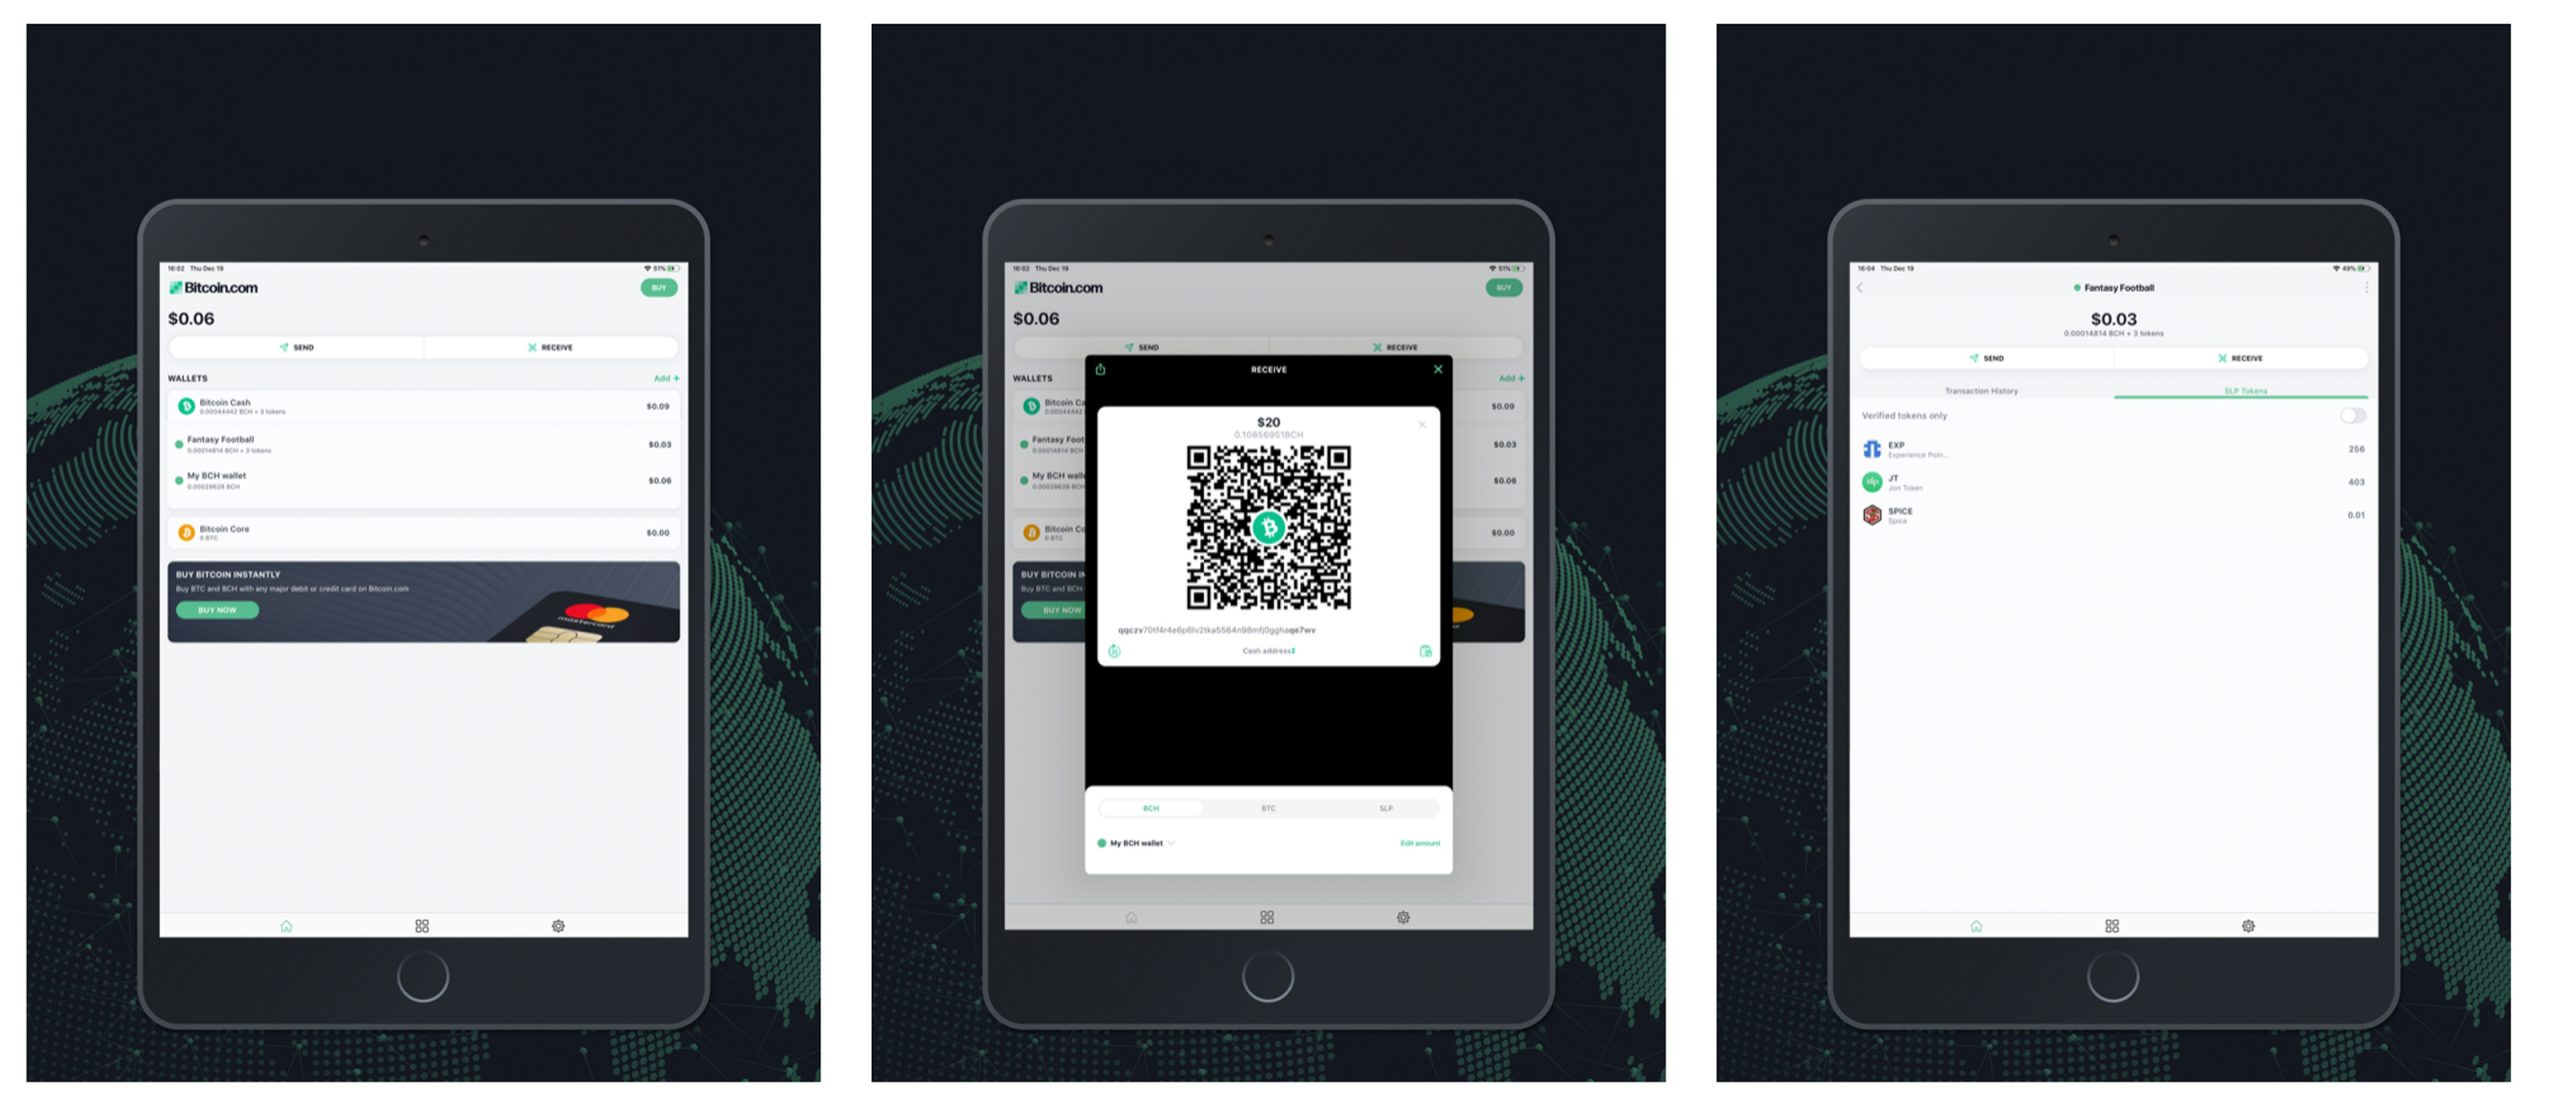 Latest Bitcoin.com Wallet Release Features Live Charts and Price Tracking